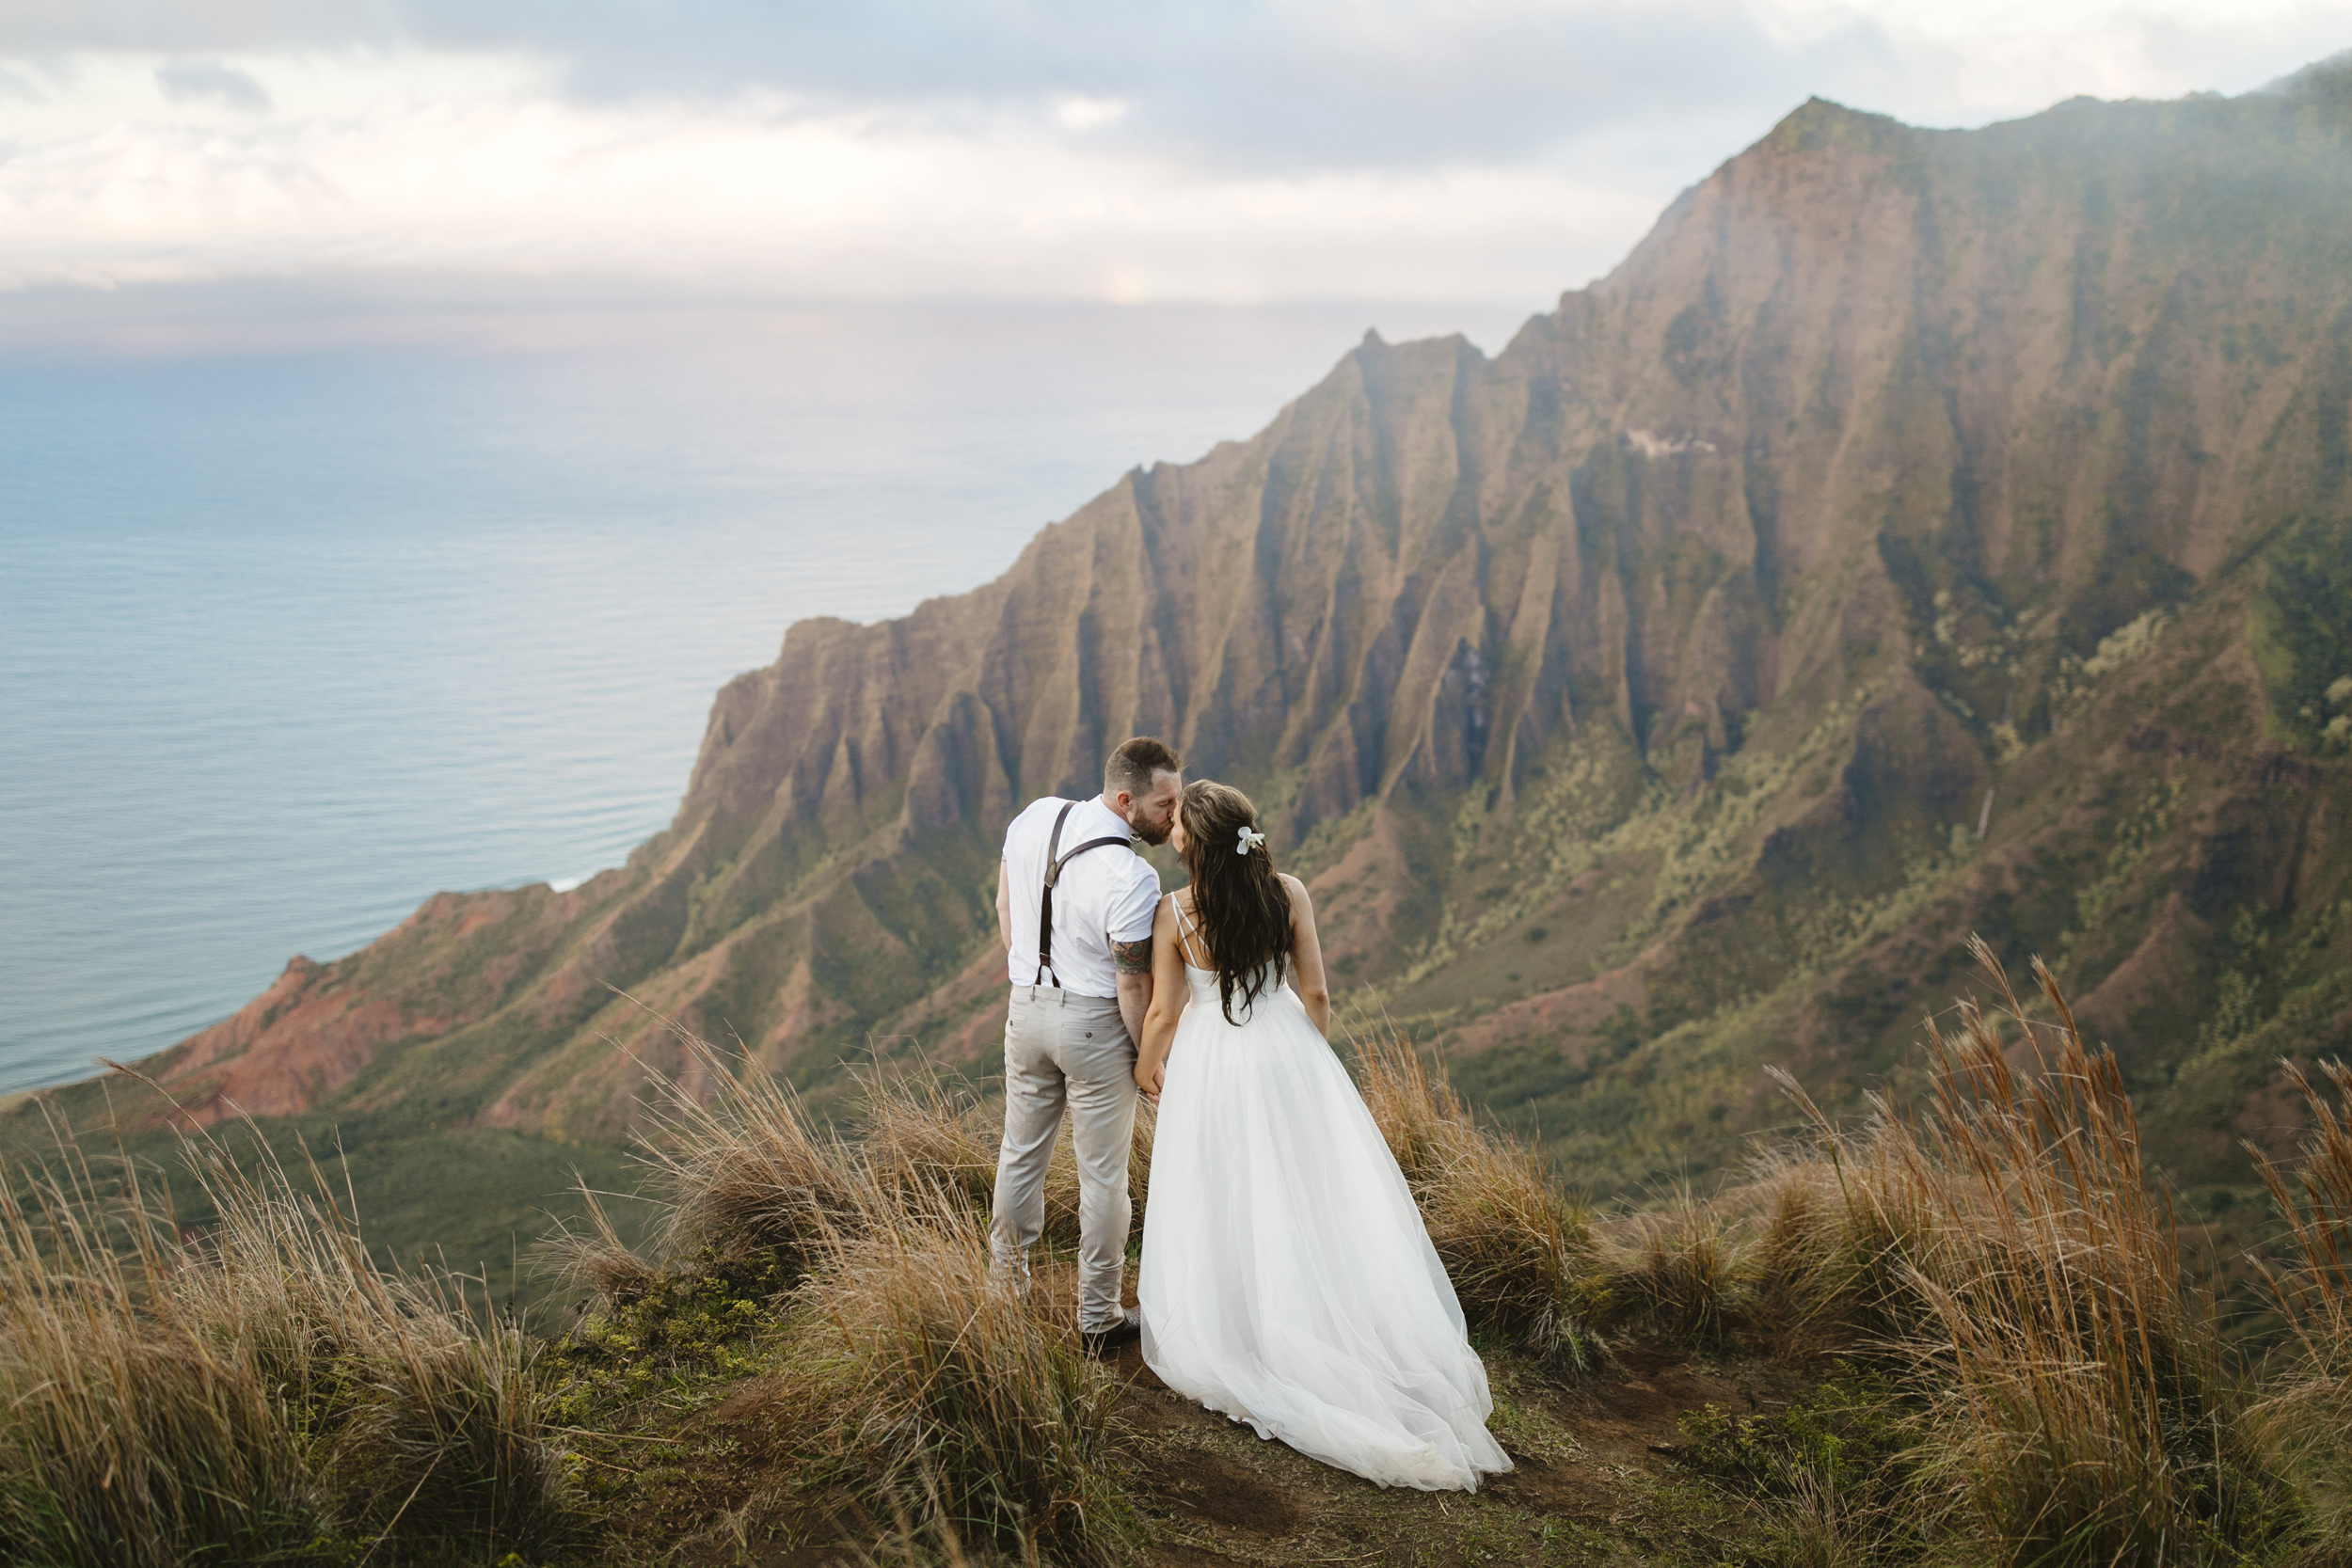 Kalepa ridge wedding ceremony with Kauai elopement photographers Colby and Jess